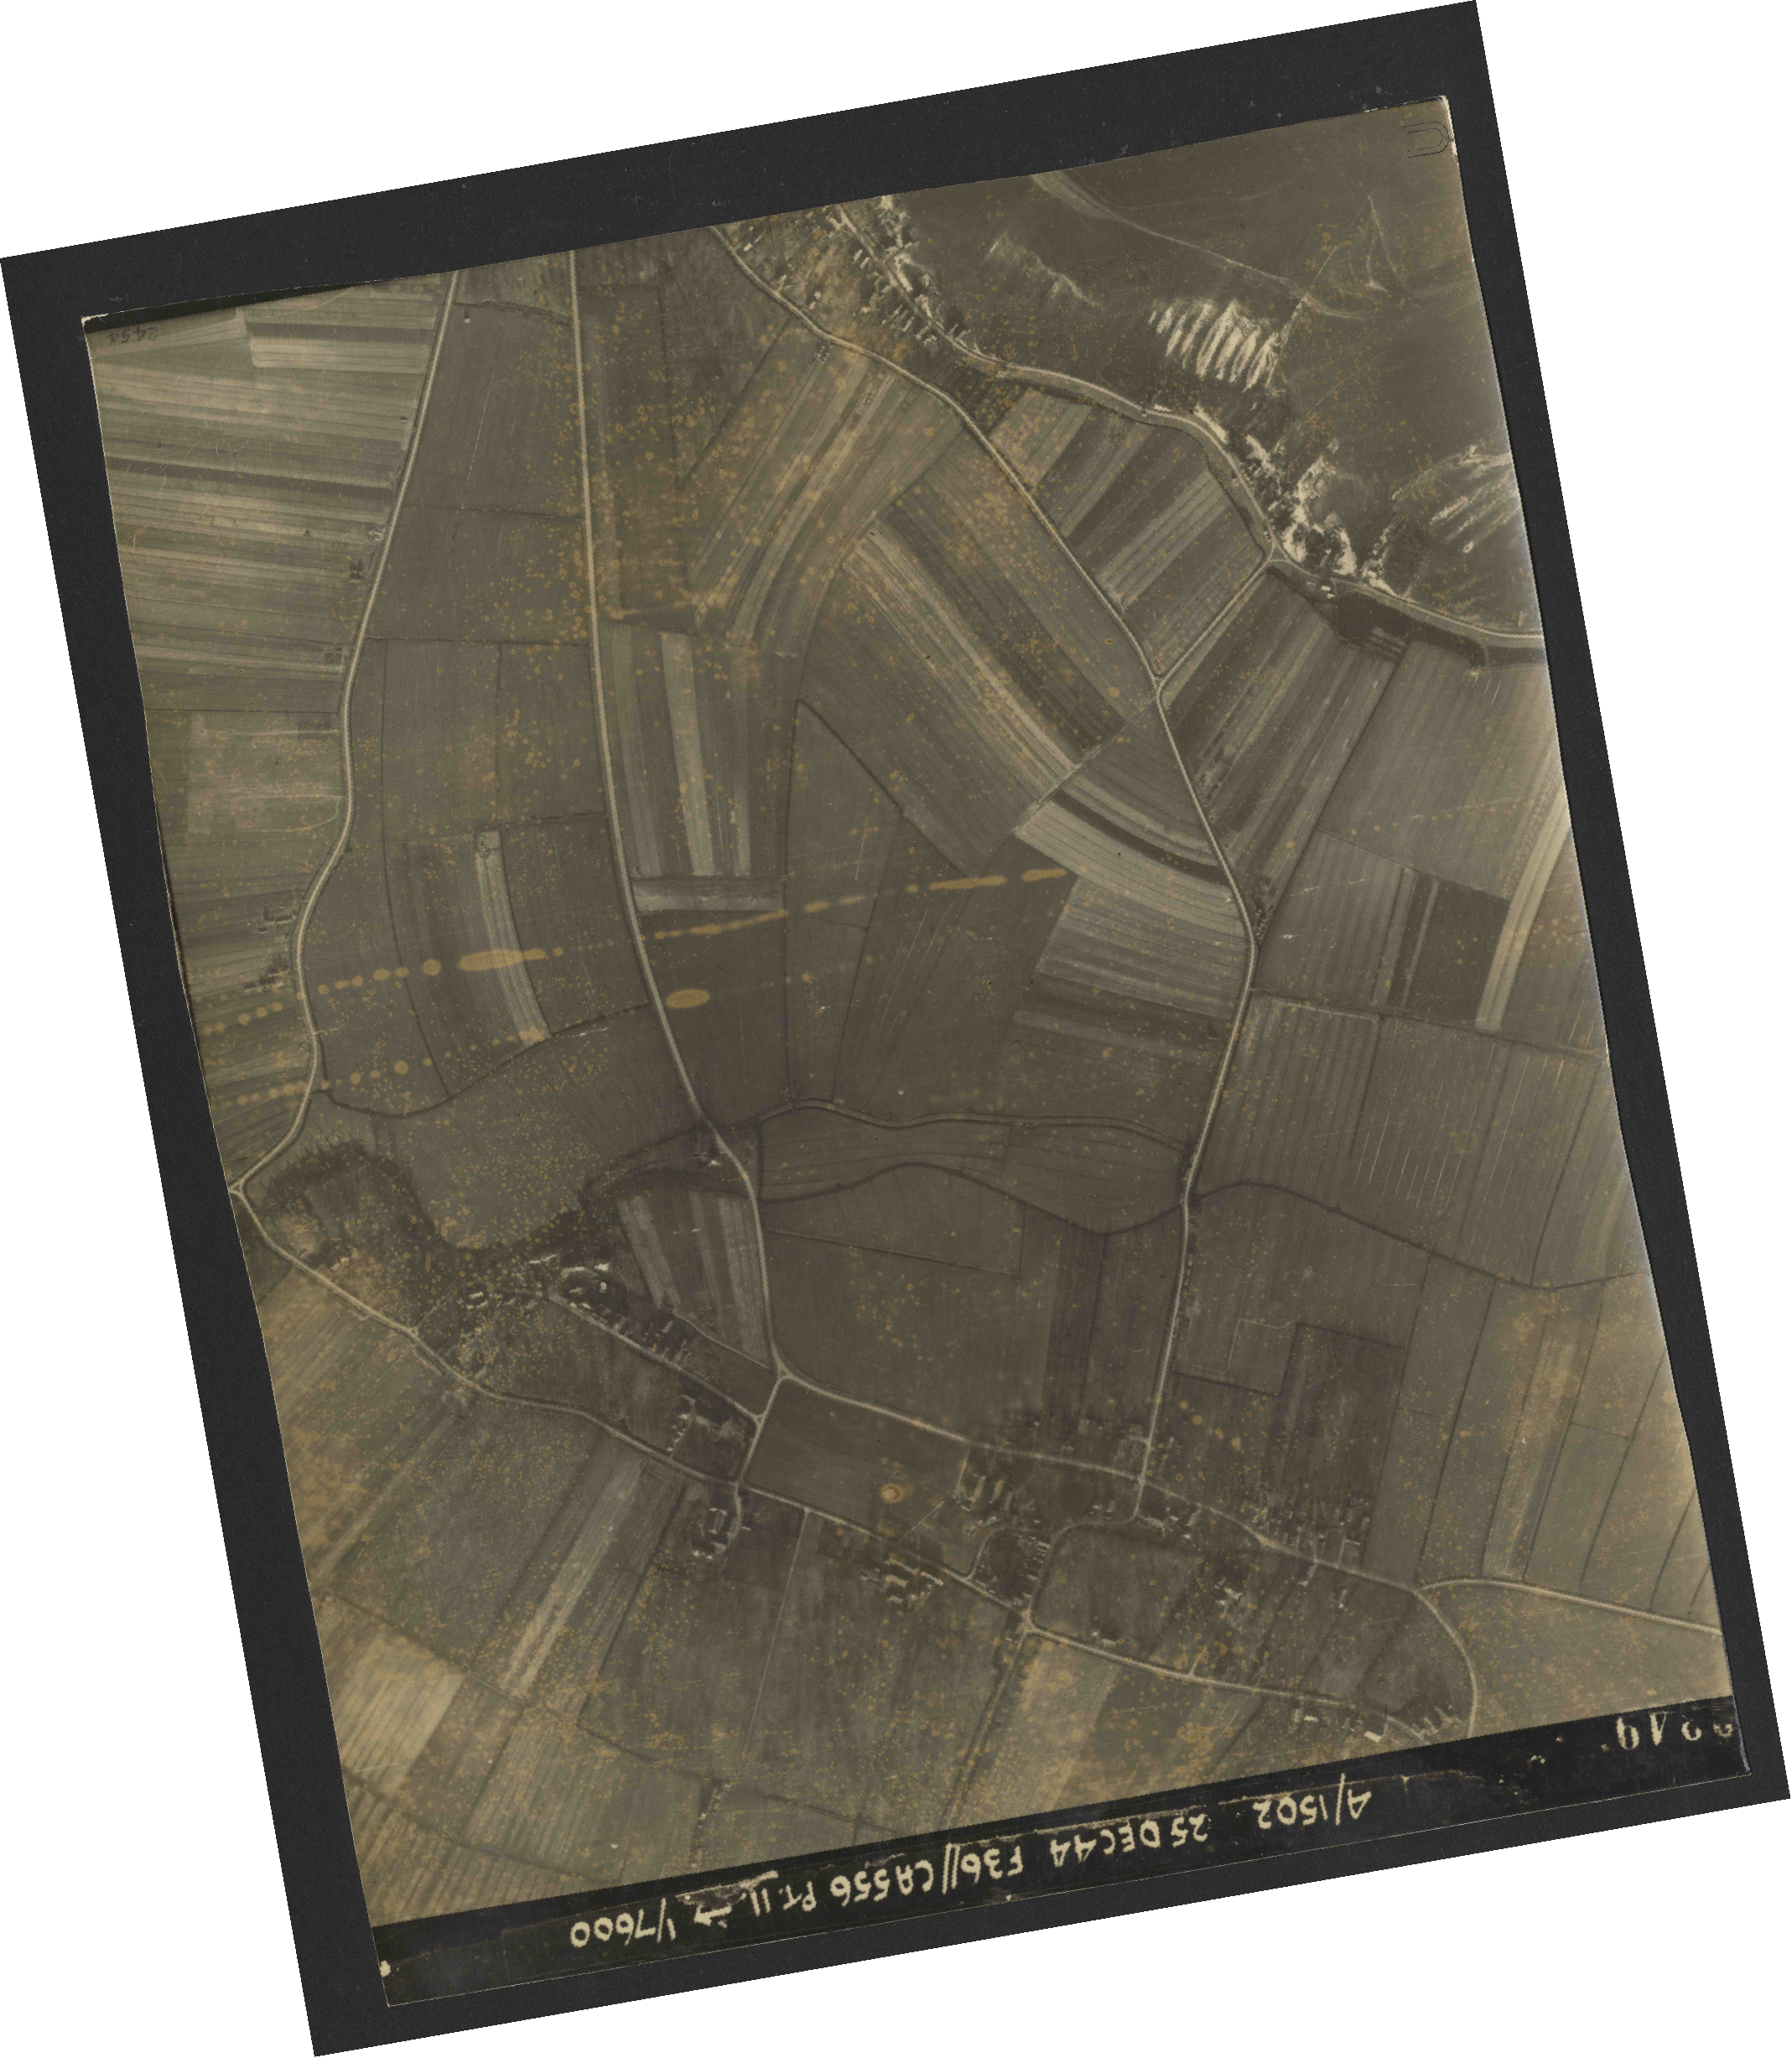 Collection RAF aerial photos 1940-1945 - flight 306, run 12, photo 3349